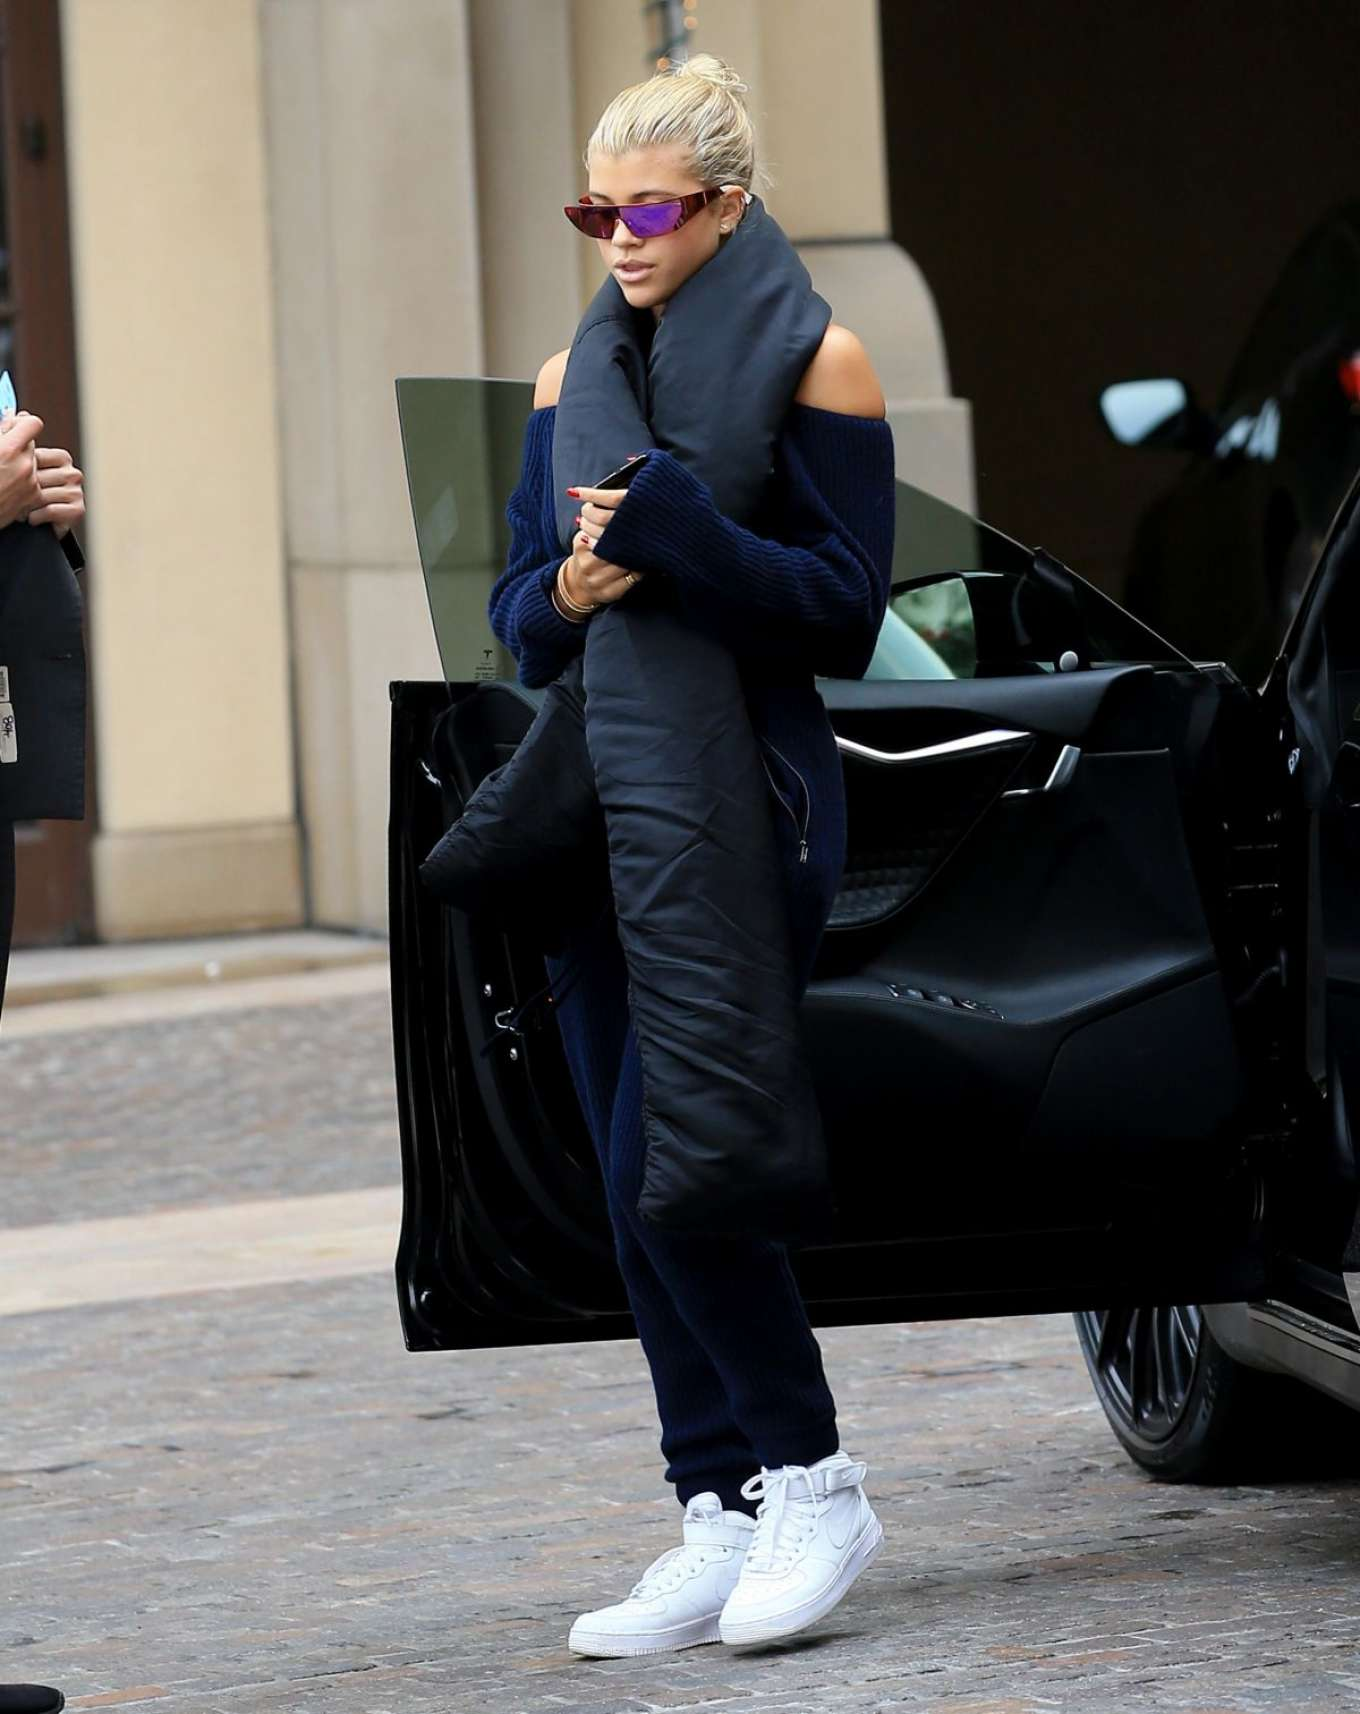 Sofia Richie 2015 : Sofia Richie Out in Beverly Hills -01